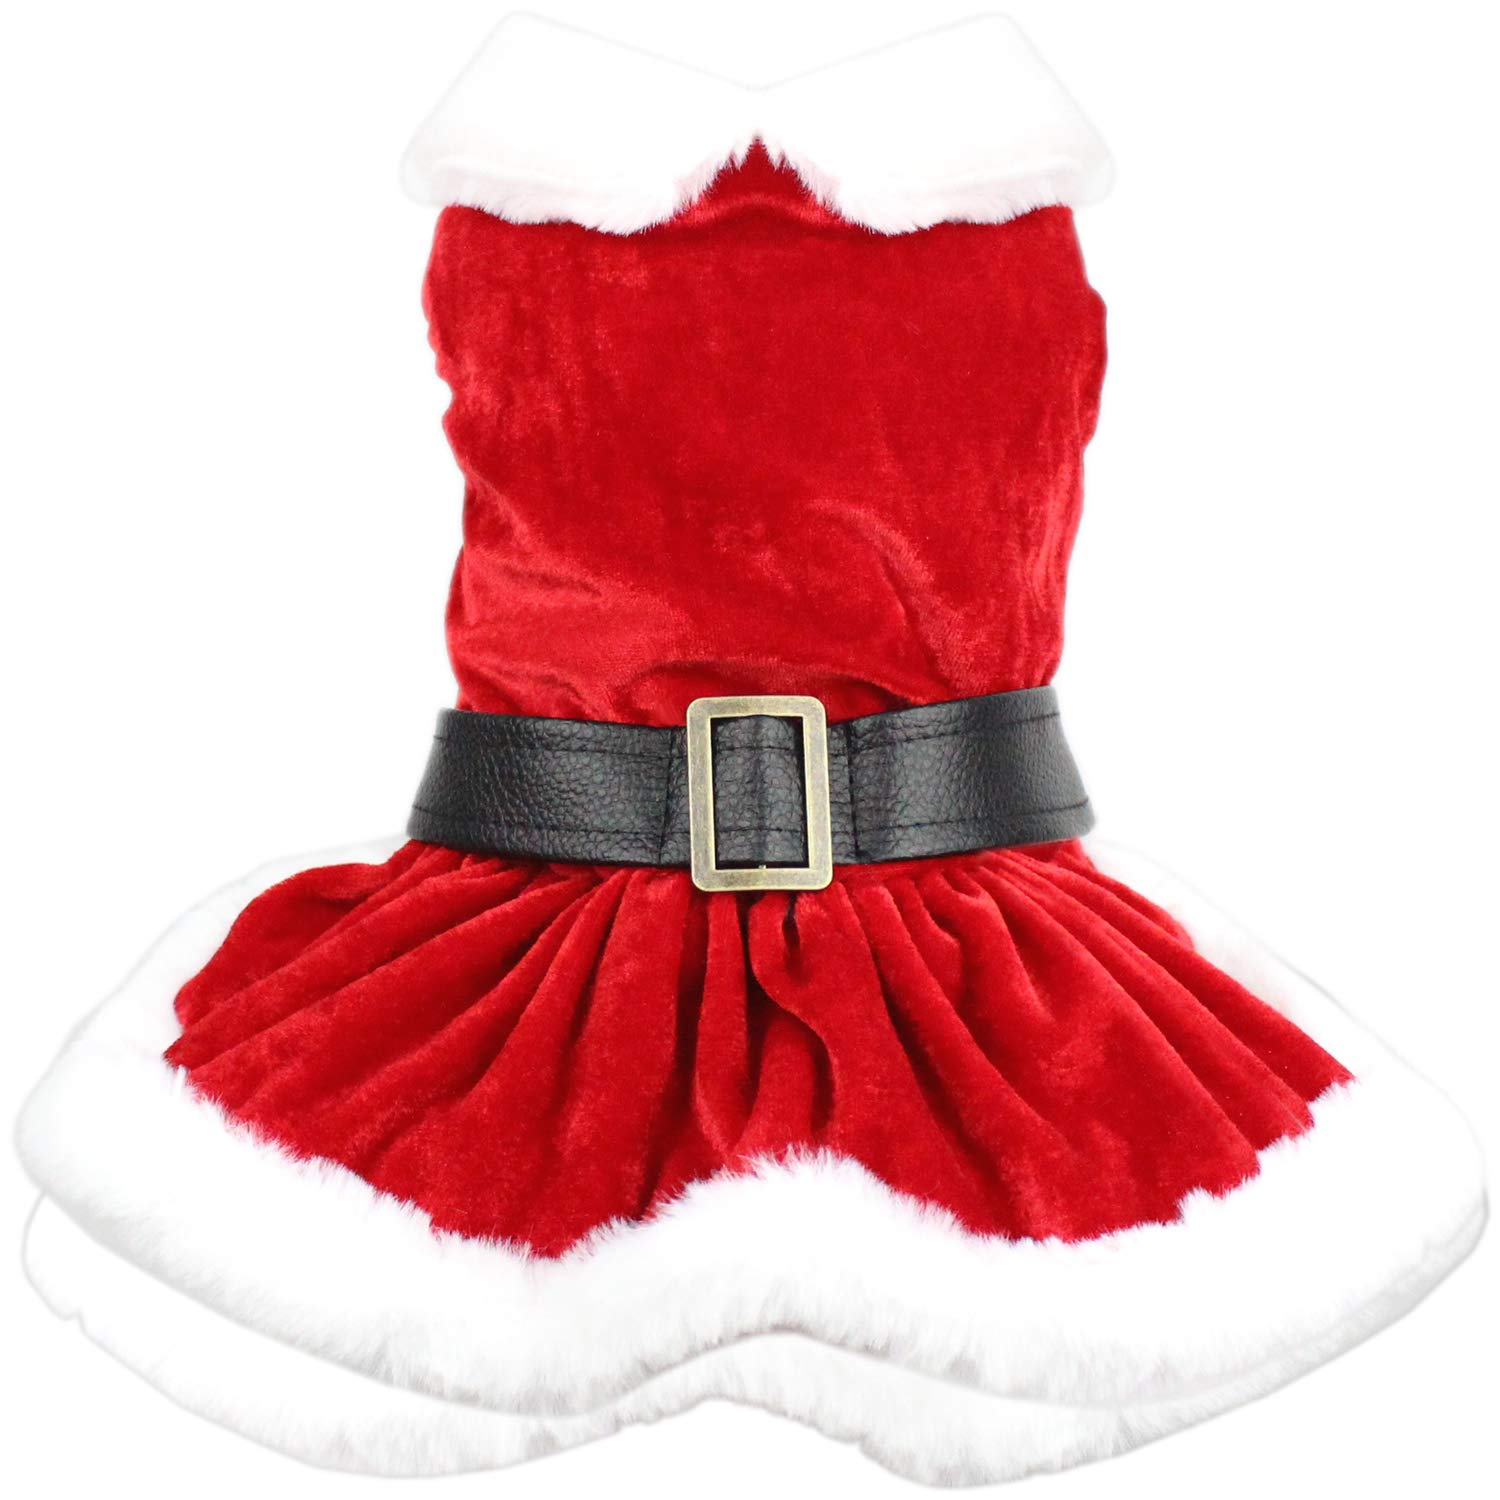 Parisian Pet Dog Cat Pet Xmas Holiday Christmas Mrs Claus Winter Dress, XL by Parisian Pet